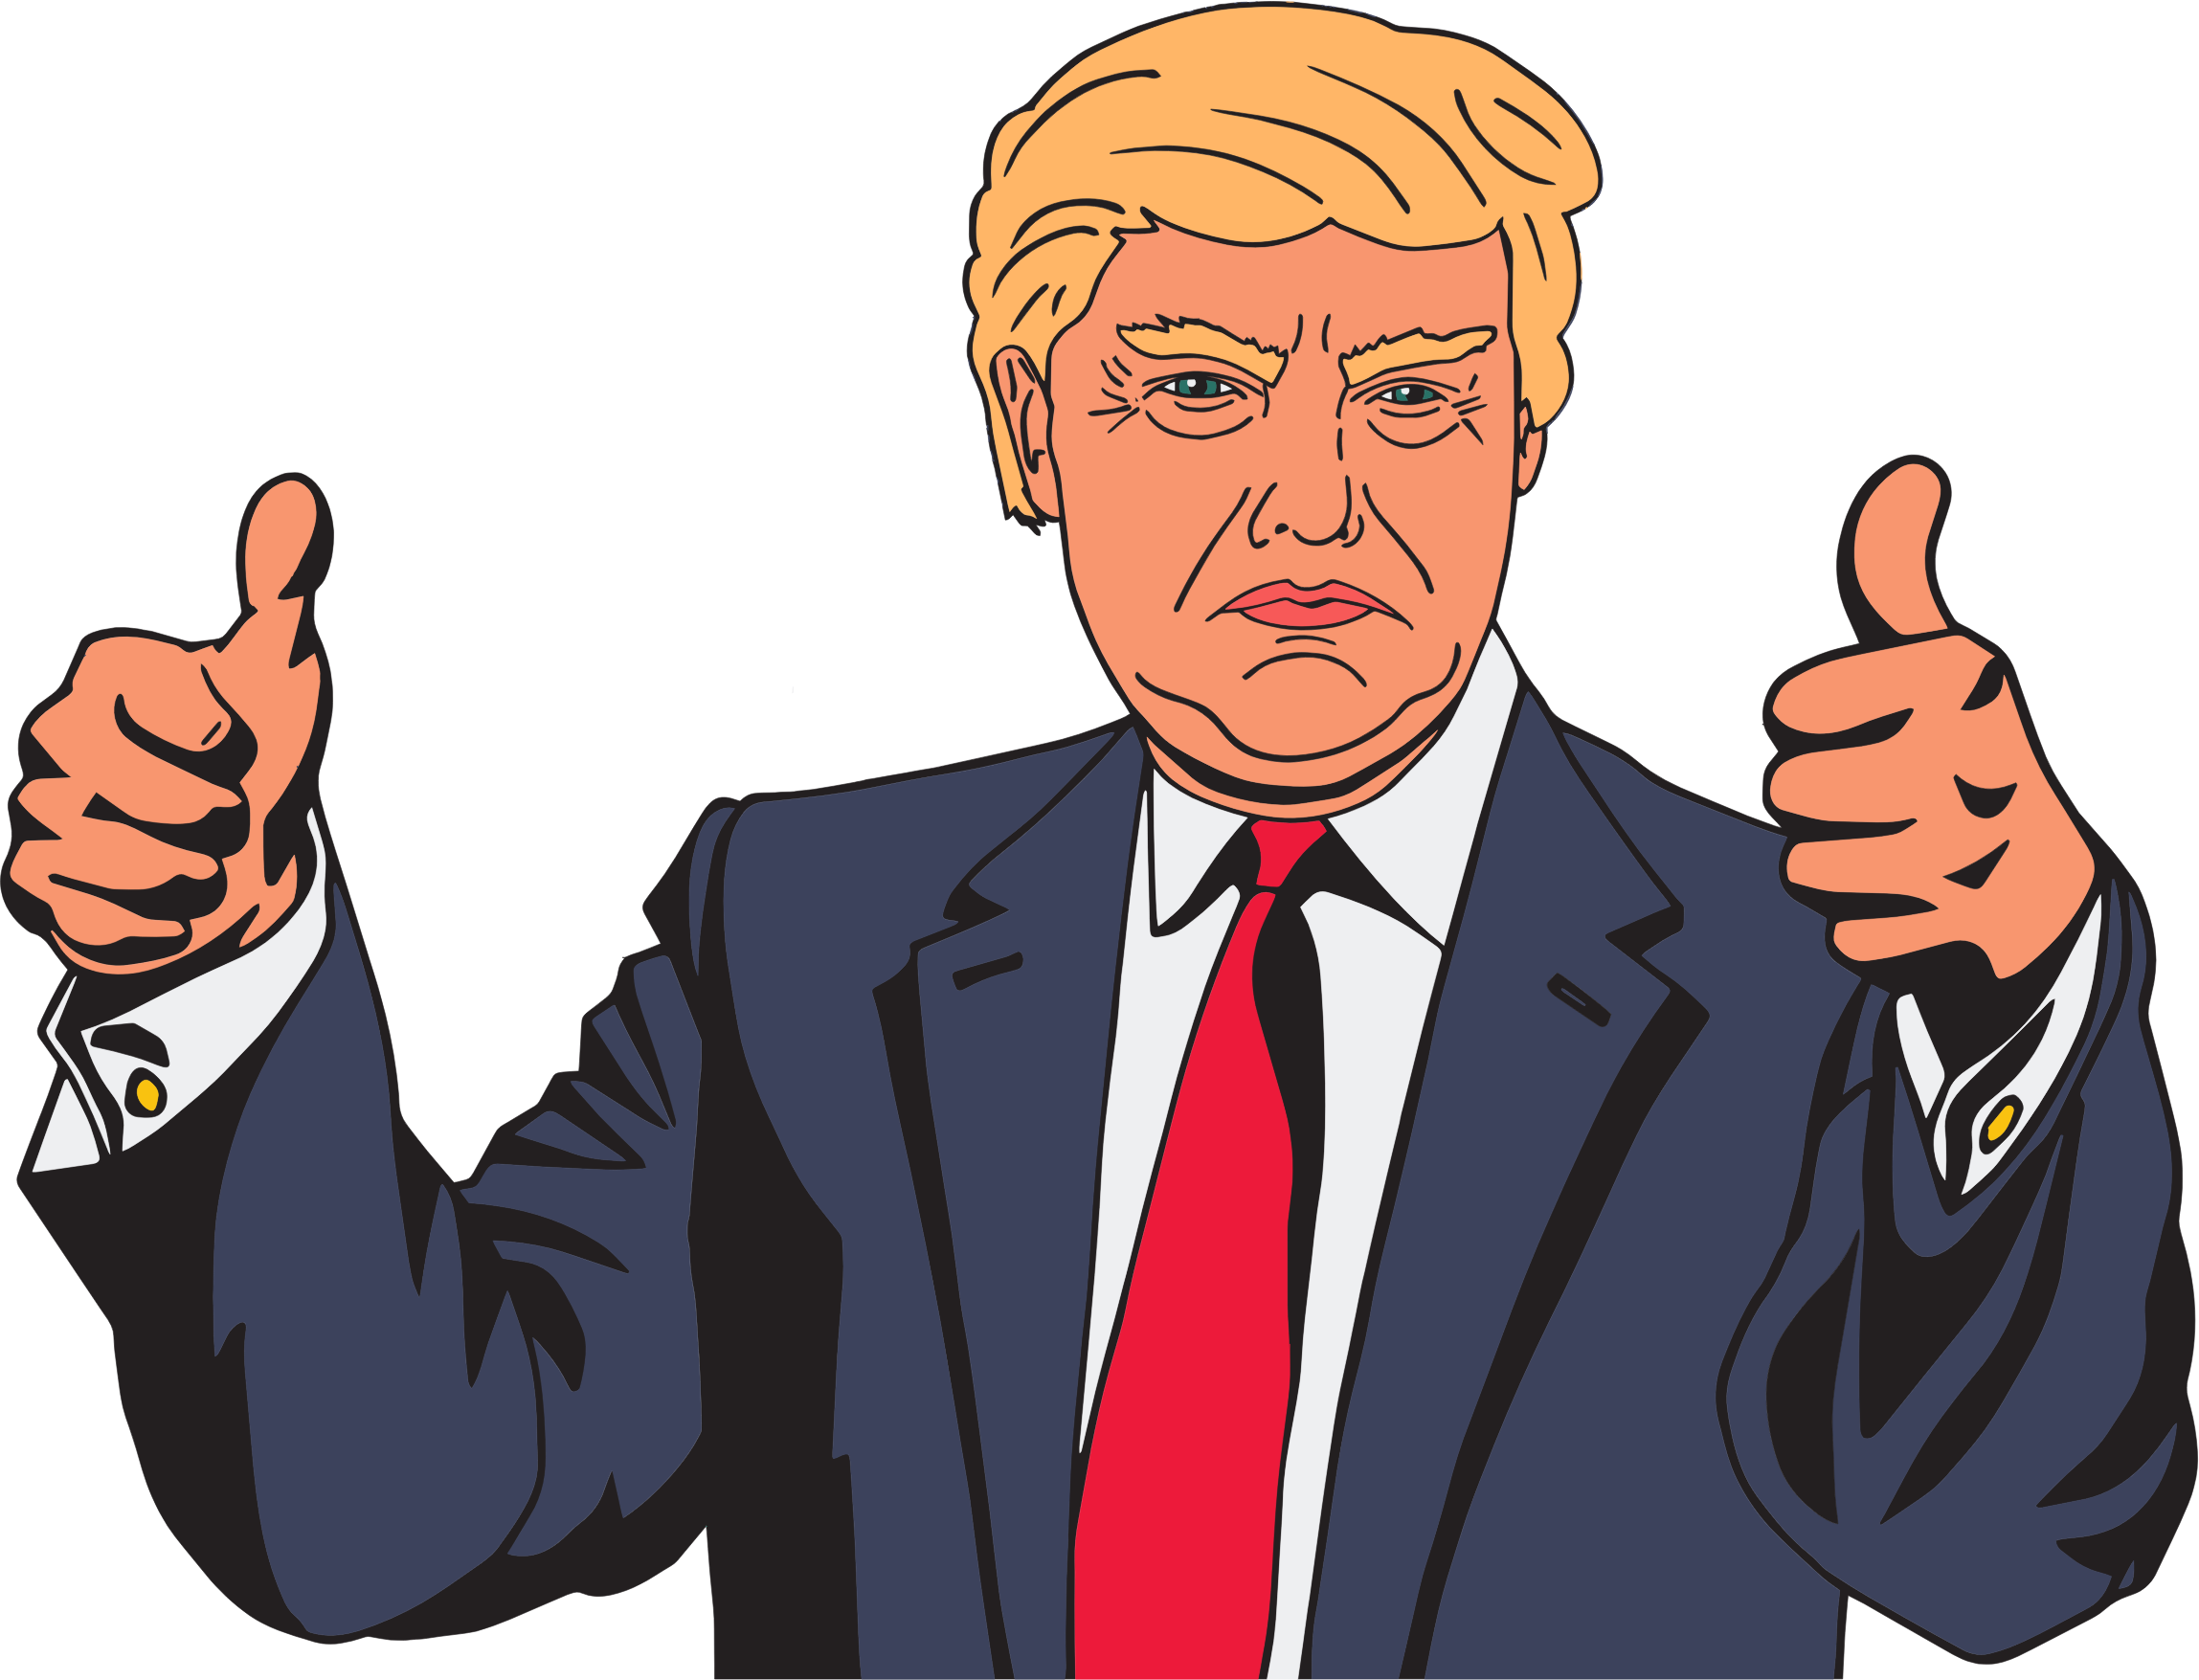 Trump clipart images banner black and white download Donald Trump Vector Clipart image - Free stock photo - Public Domain ... banner black and white download